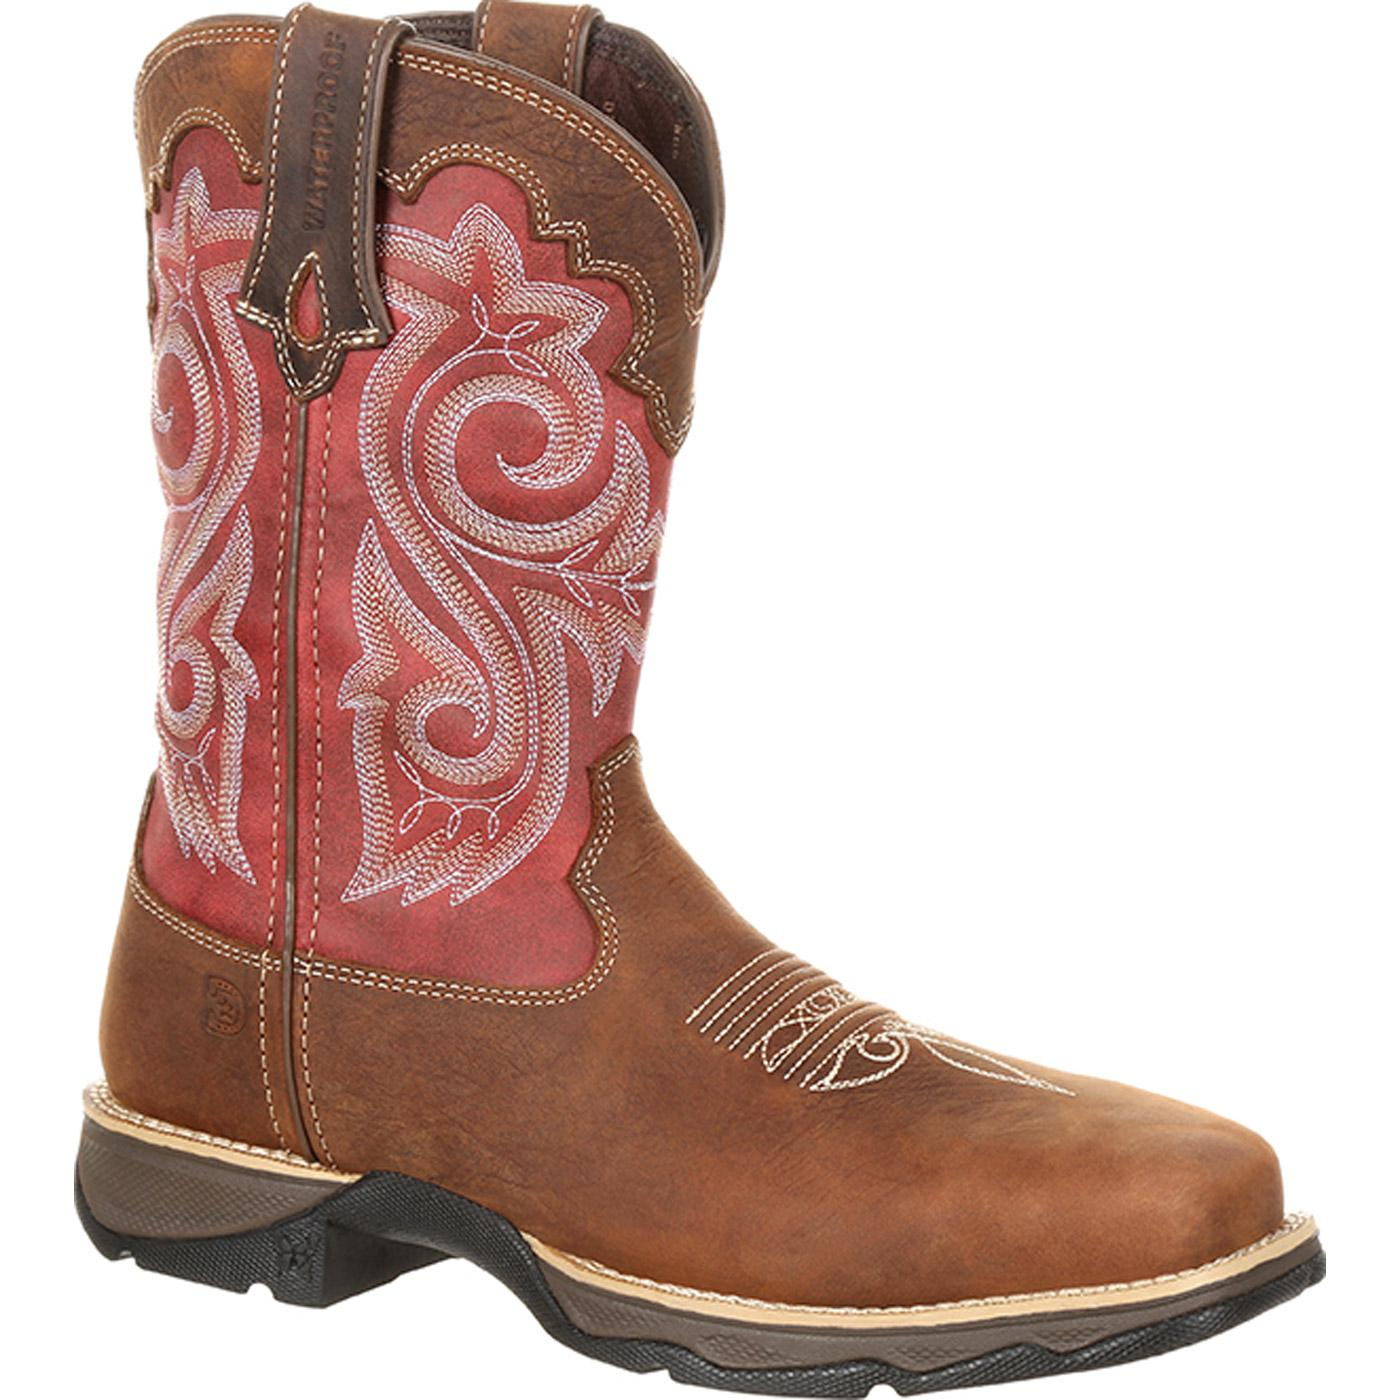 Lady Rebel by Durango Women s Waterproof Composite Toe Western Work  BootLady Rebel by Durango Women s Waterproof Composite Toe Western Work  Boot c3e203e5db